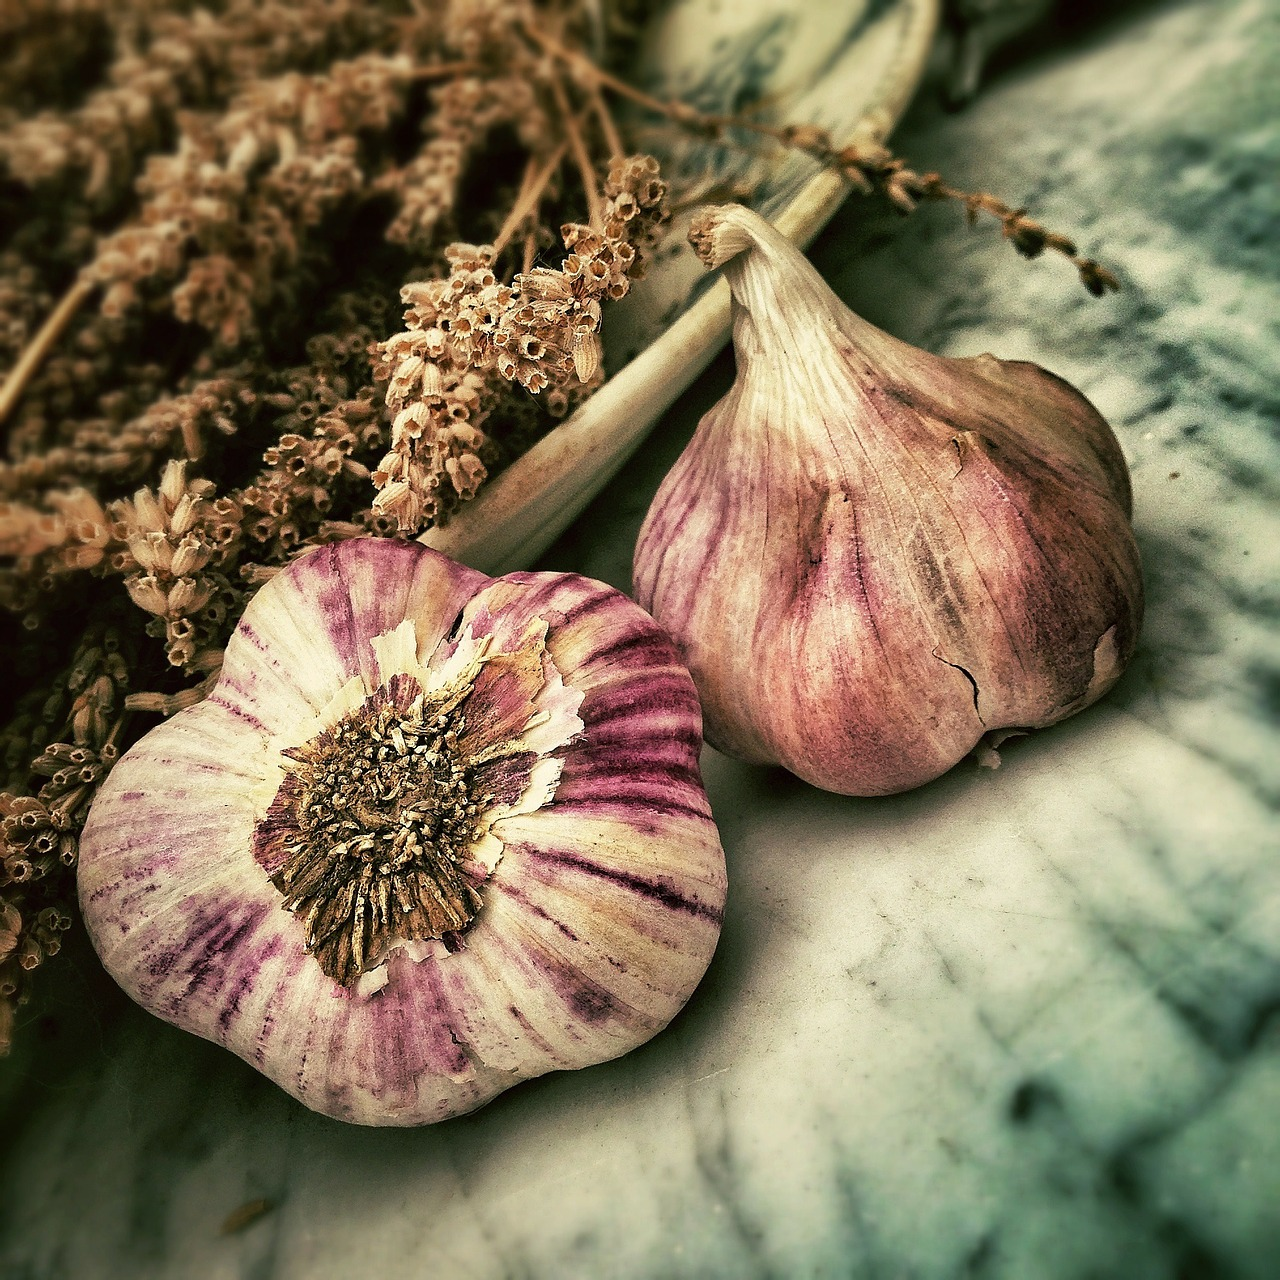 how to make aged garlic: the benefits of garlic without the